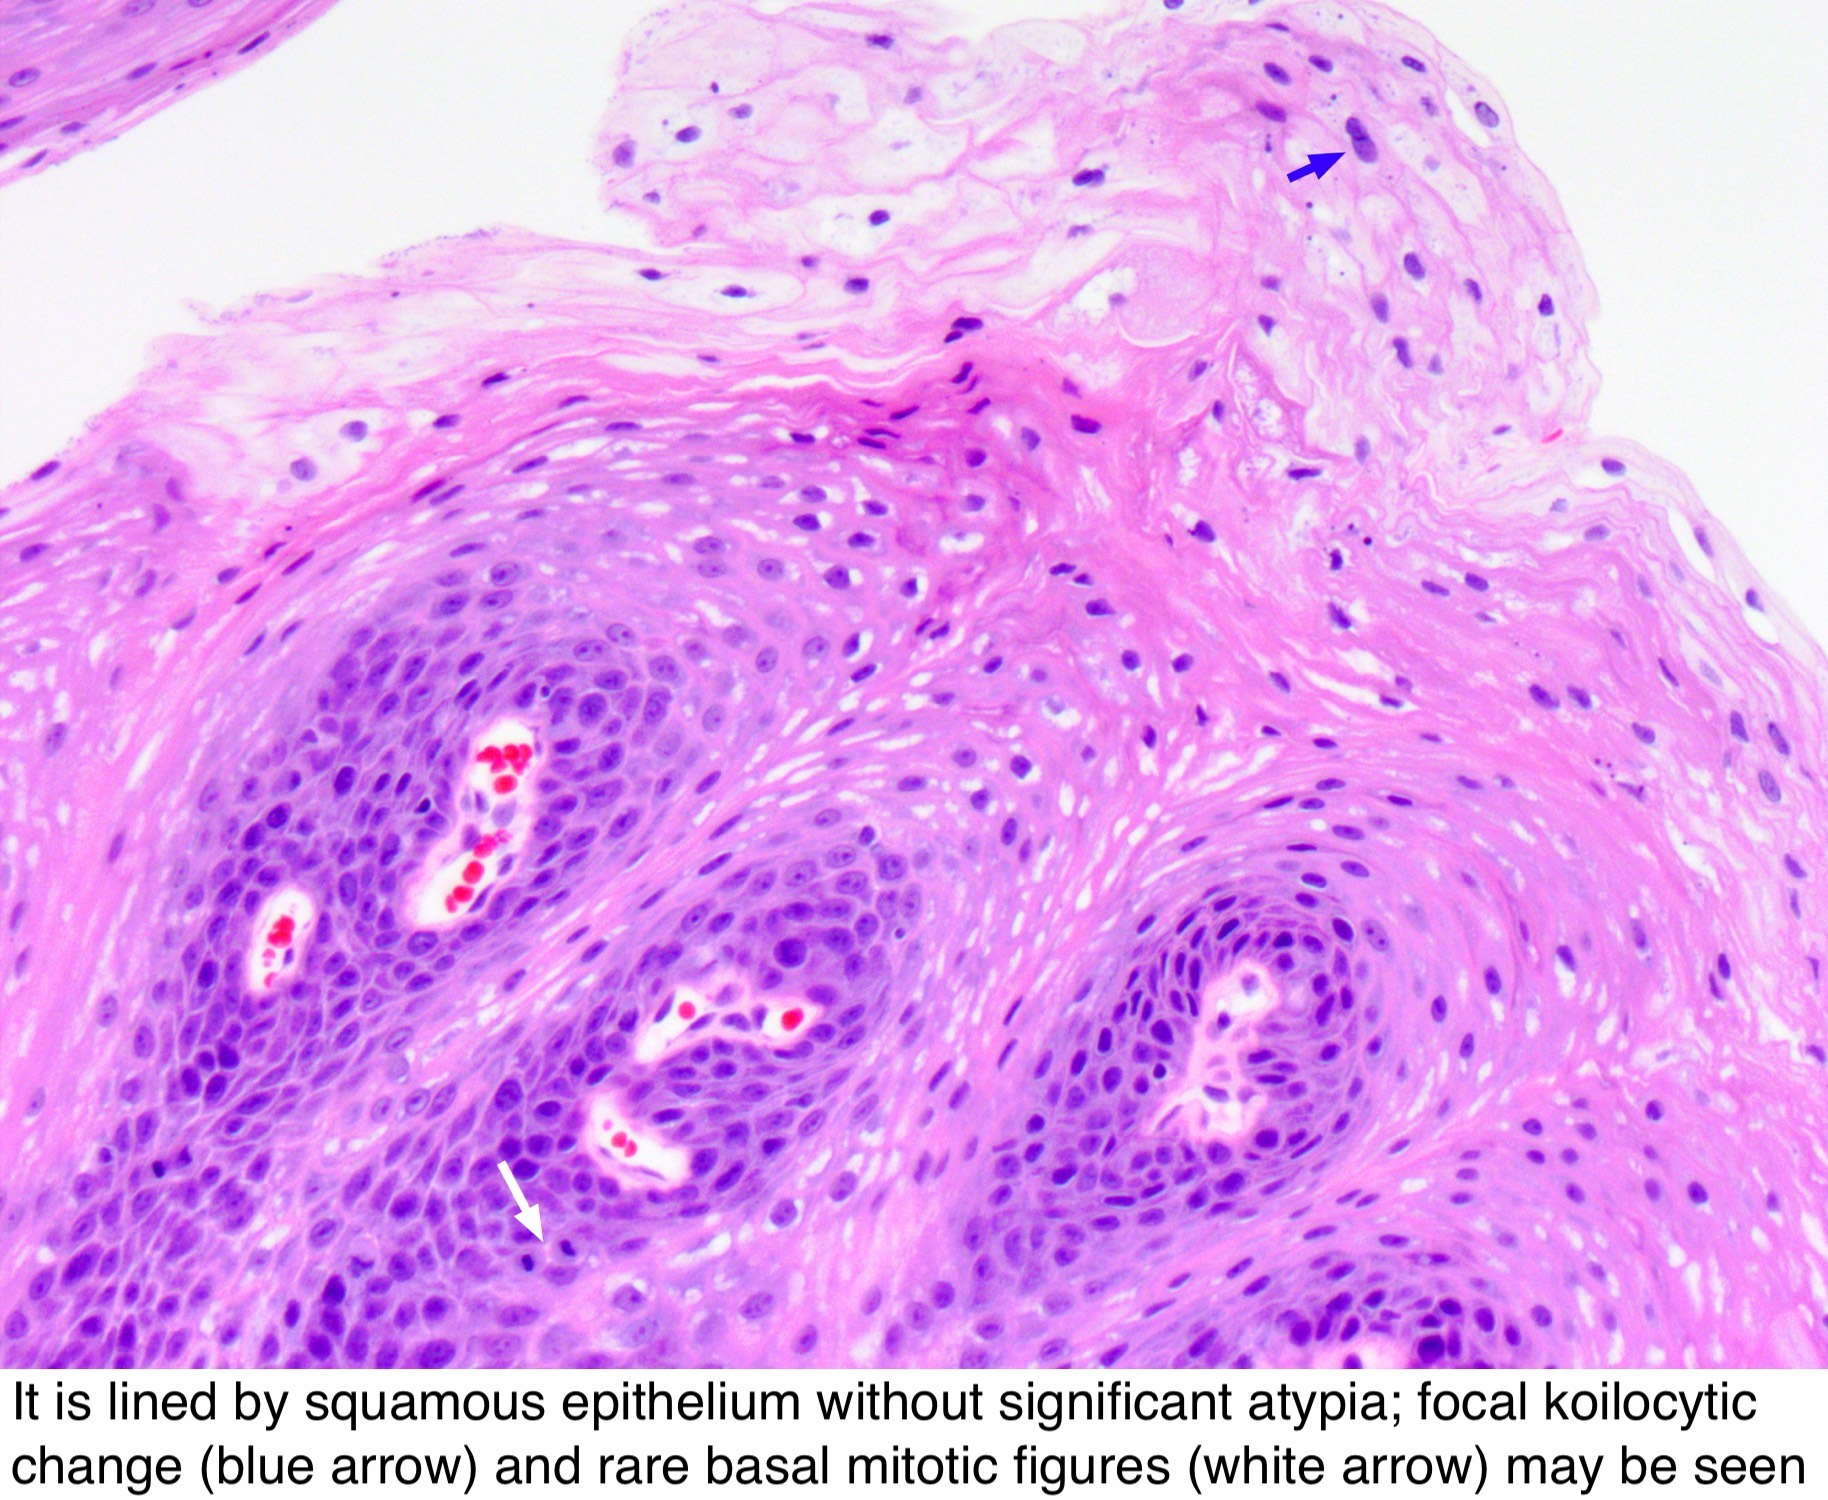 inverted papilloma associated with squamous cell carcinoma